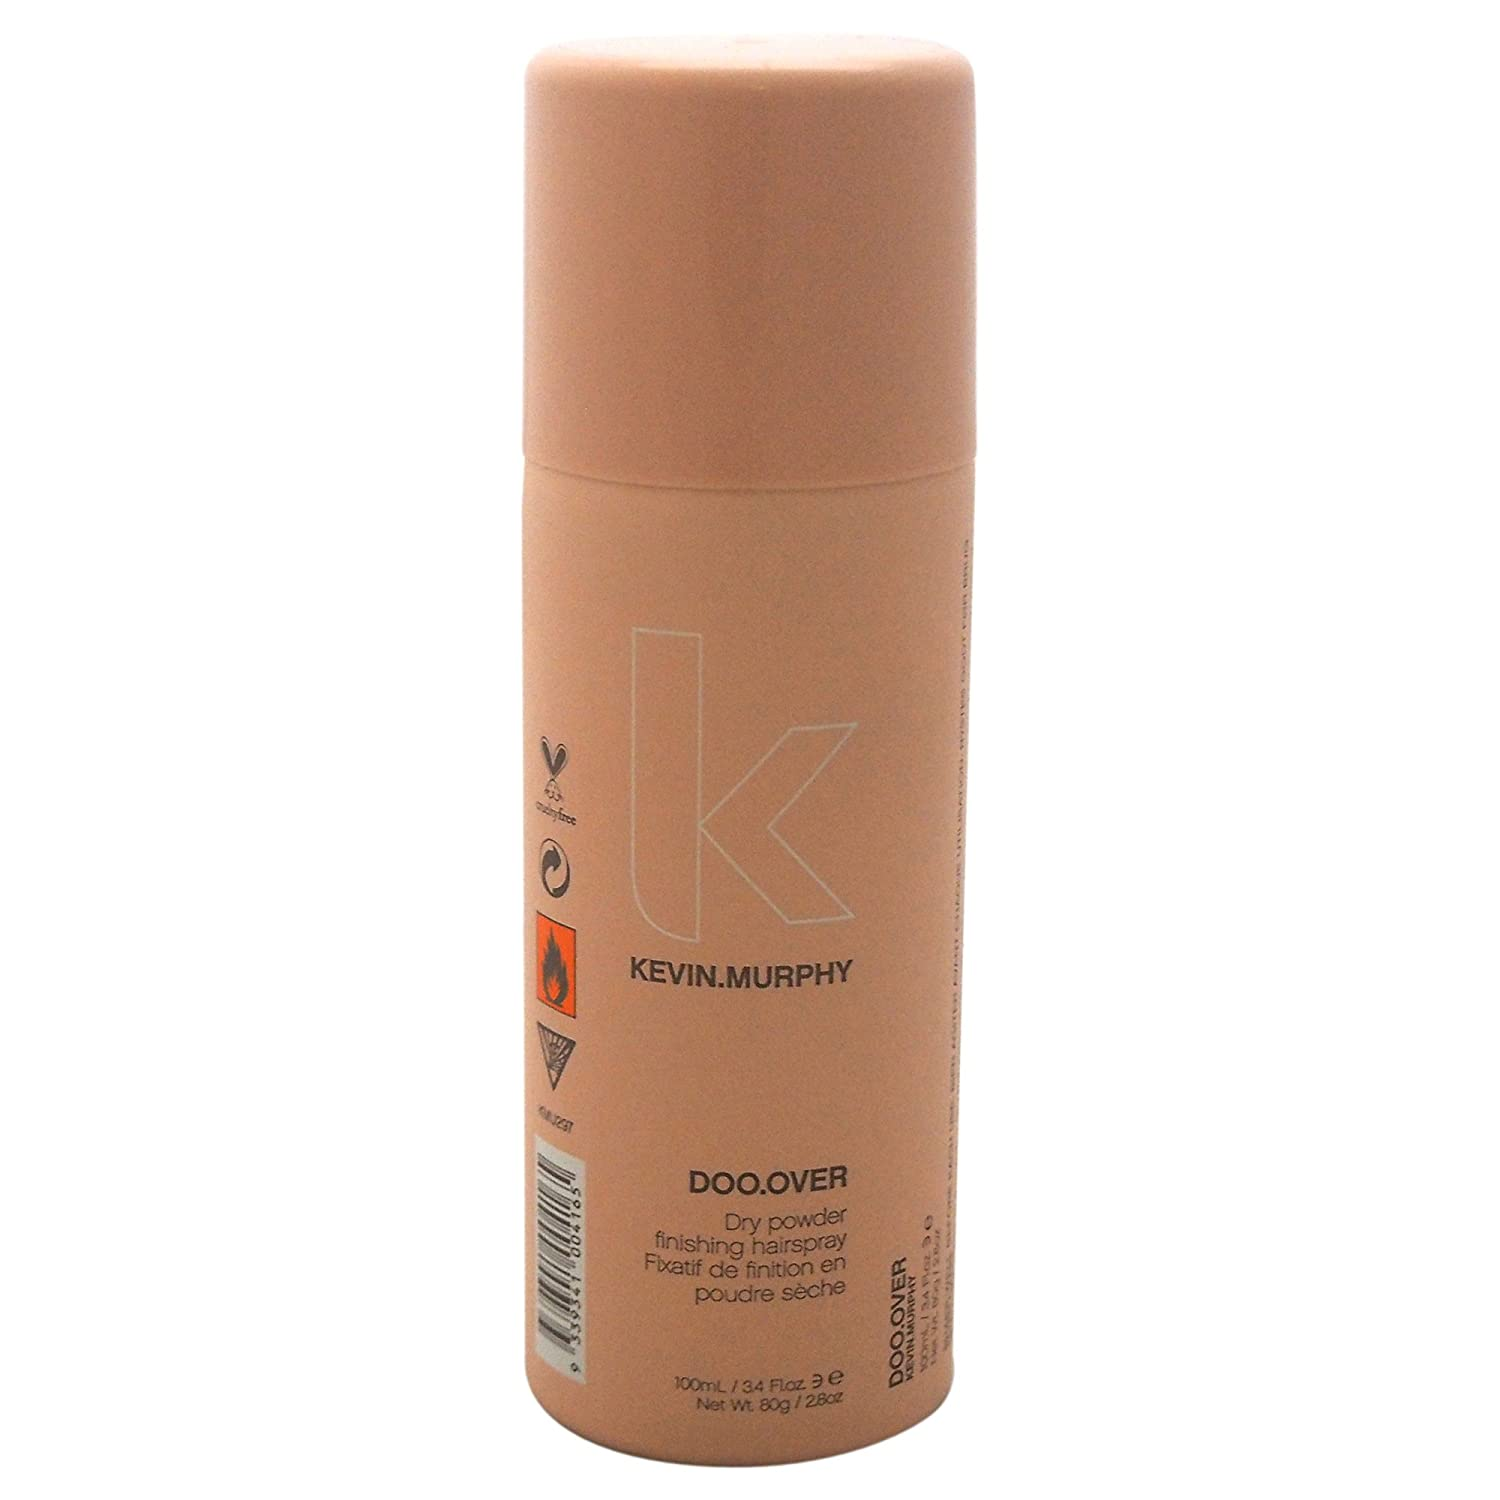 Kevin Murphy Doo Over Dry Powder Finishing Hairspray, 8.52 Ounce PerfumeWorldWide Inc. Drop Ship KMU296